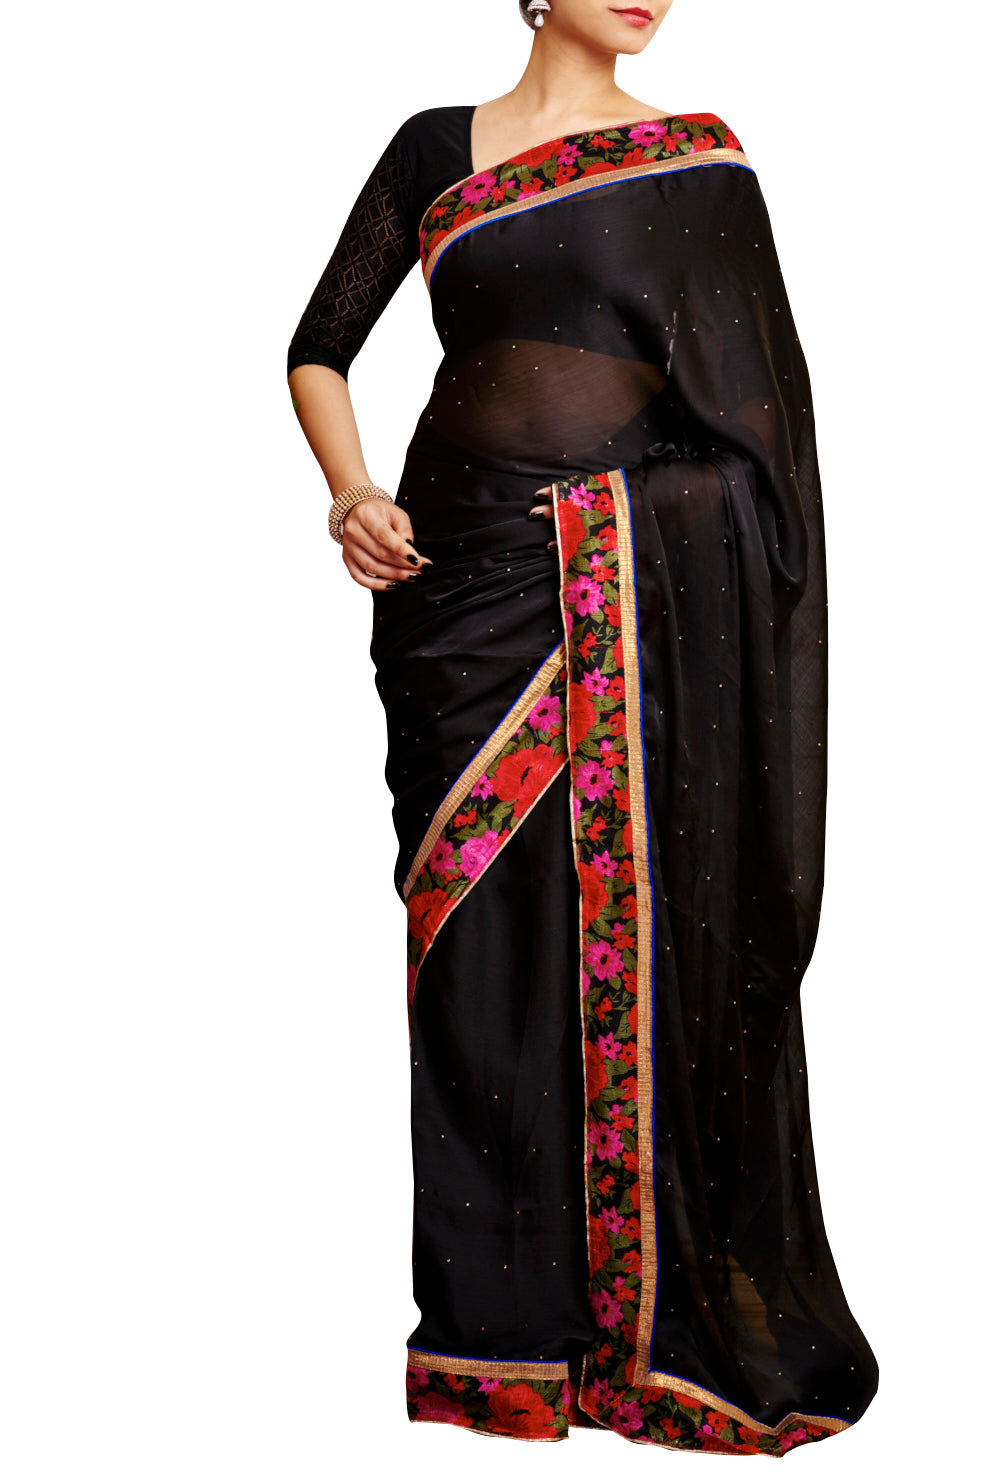 Egyptian Black Star Plus Chiffon Printed Saree - GleamBerry